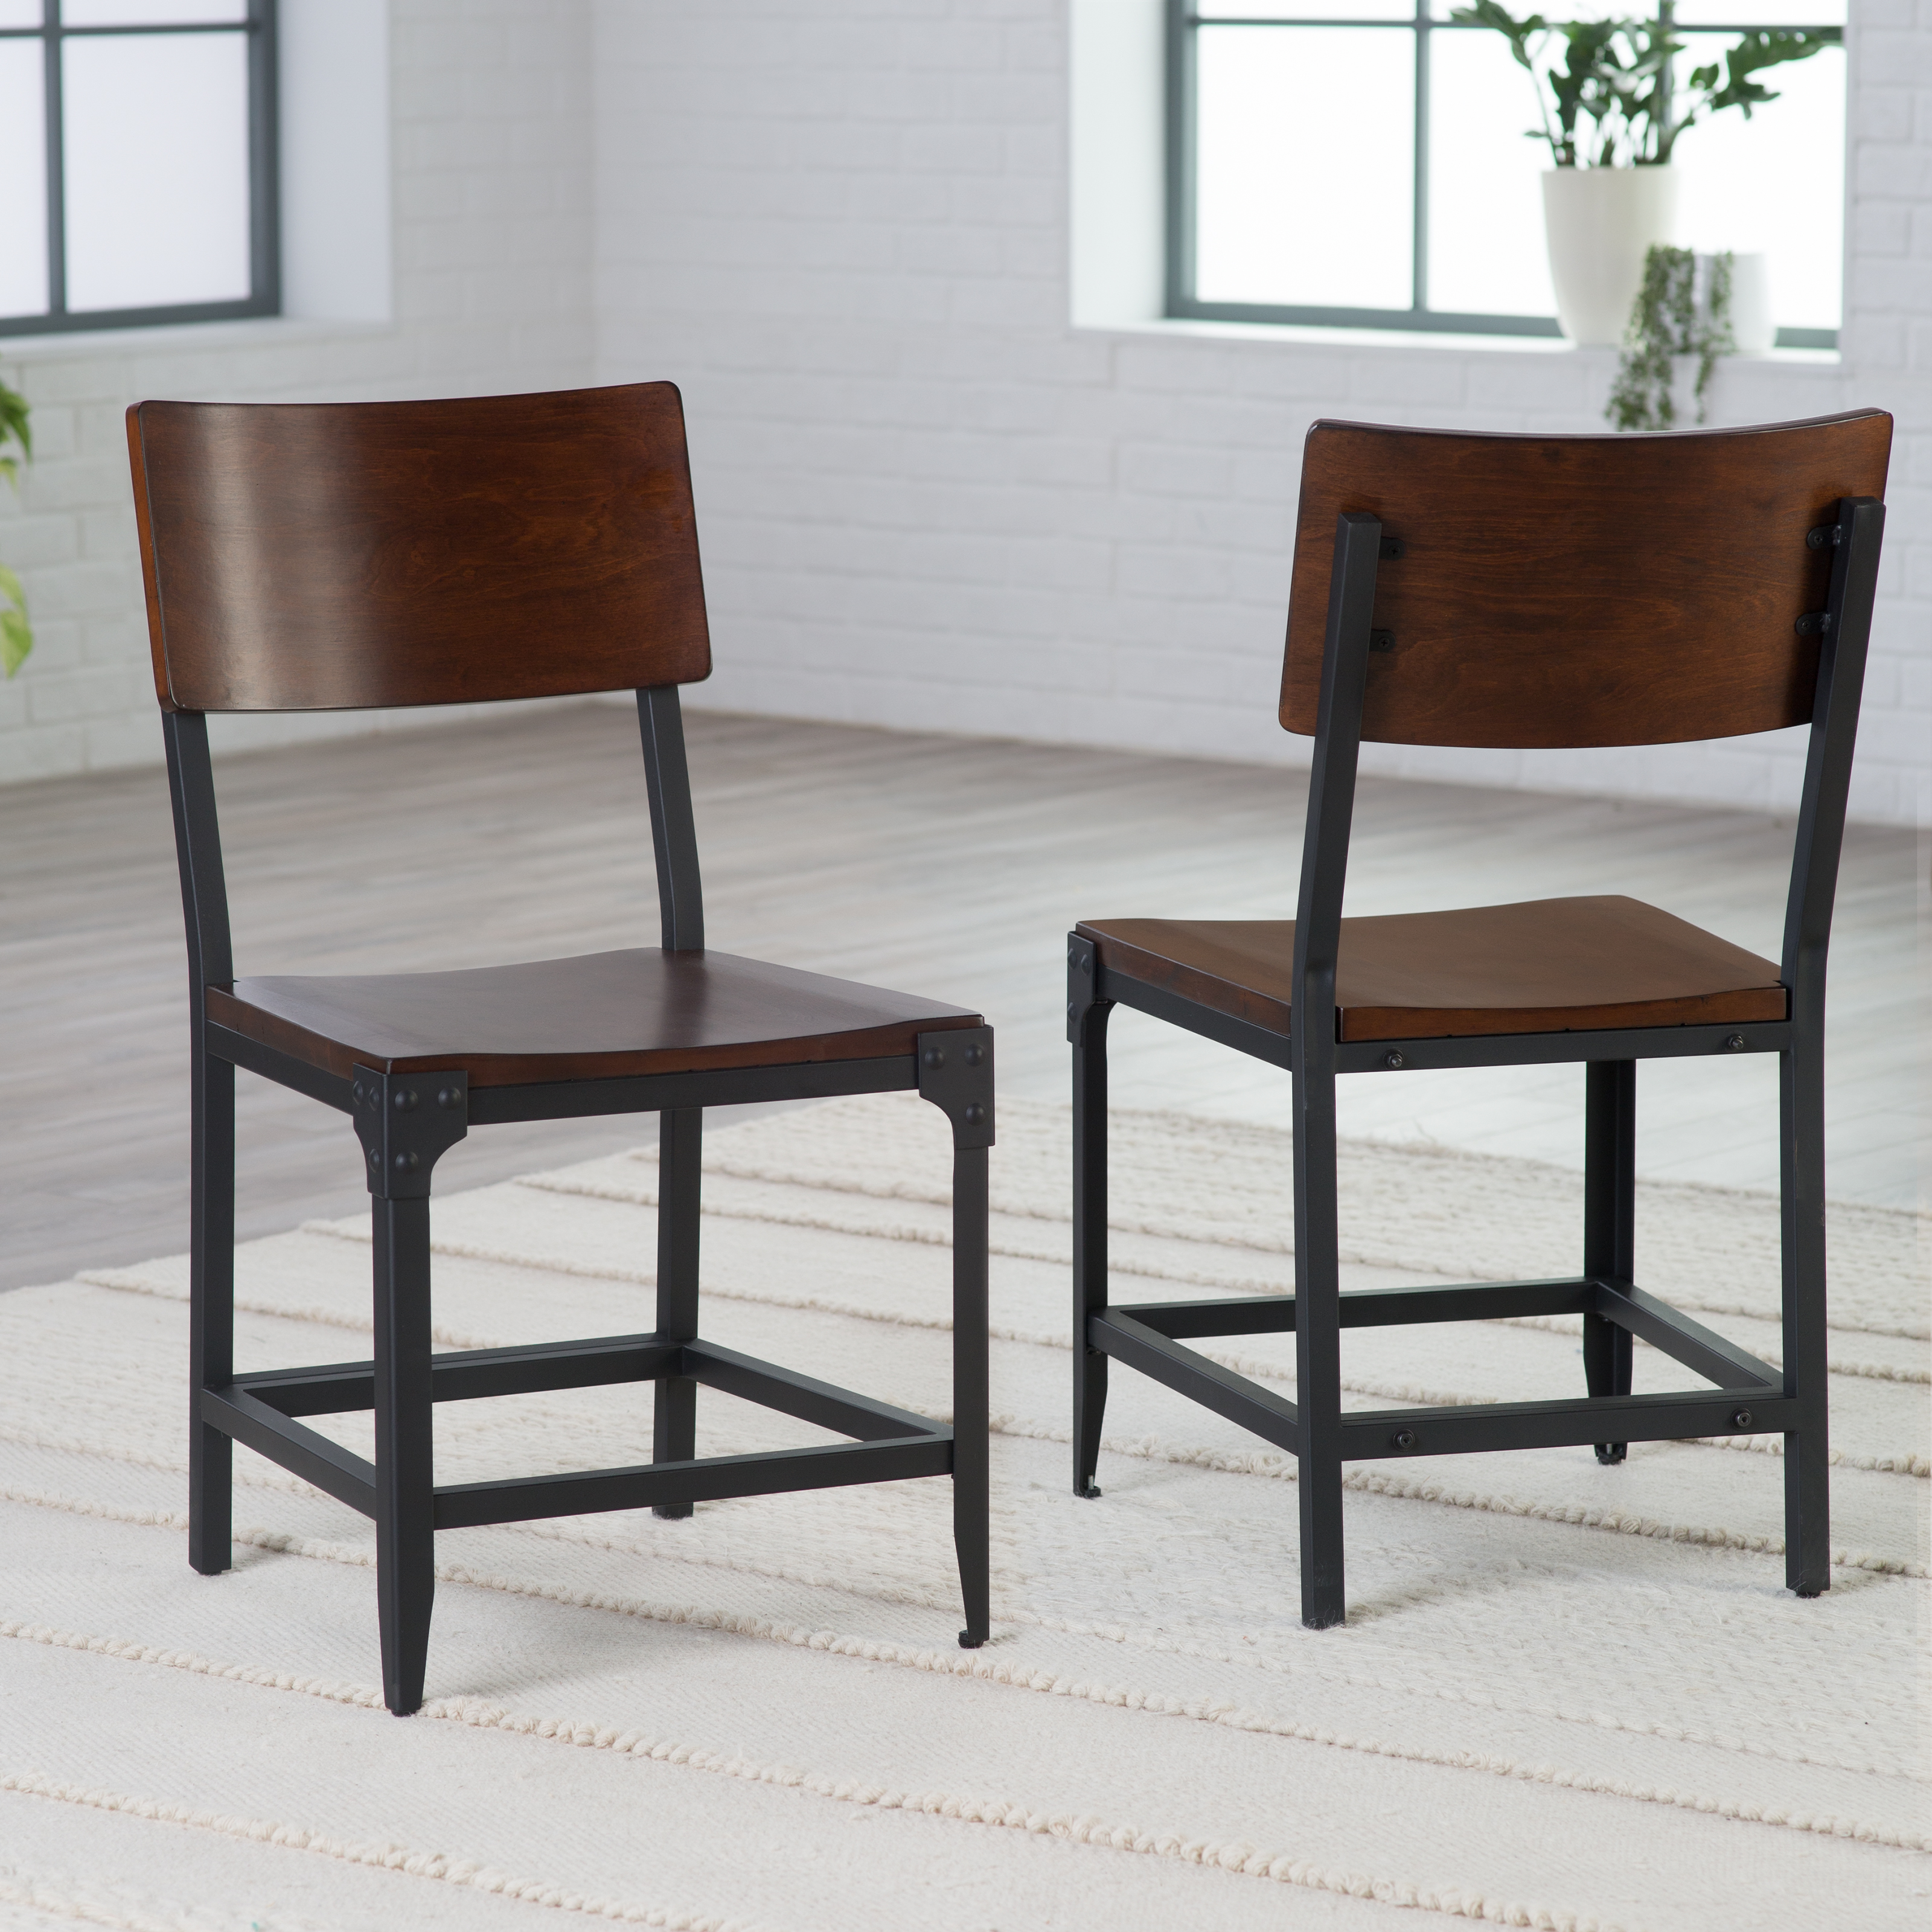 Belham Living Trenton Wood and Metal Dining Chairs - Set of 2 & Distressed u0026 Industrial Style Kitchen and Dining Room Chairs | Hayneedle